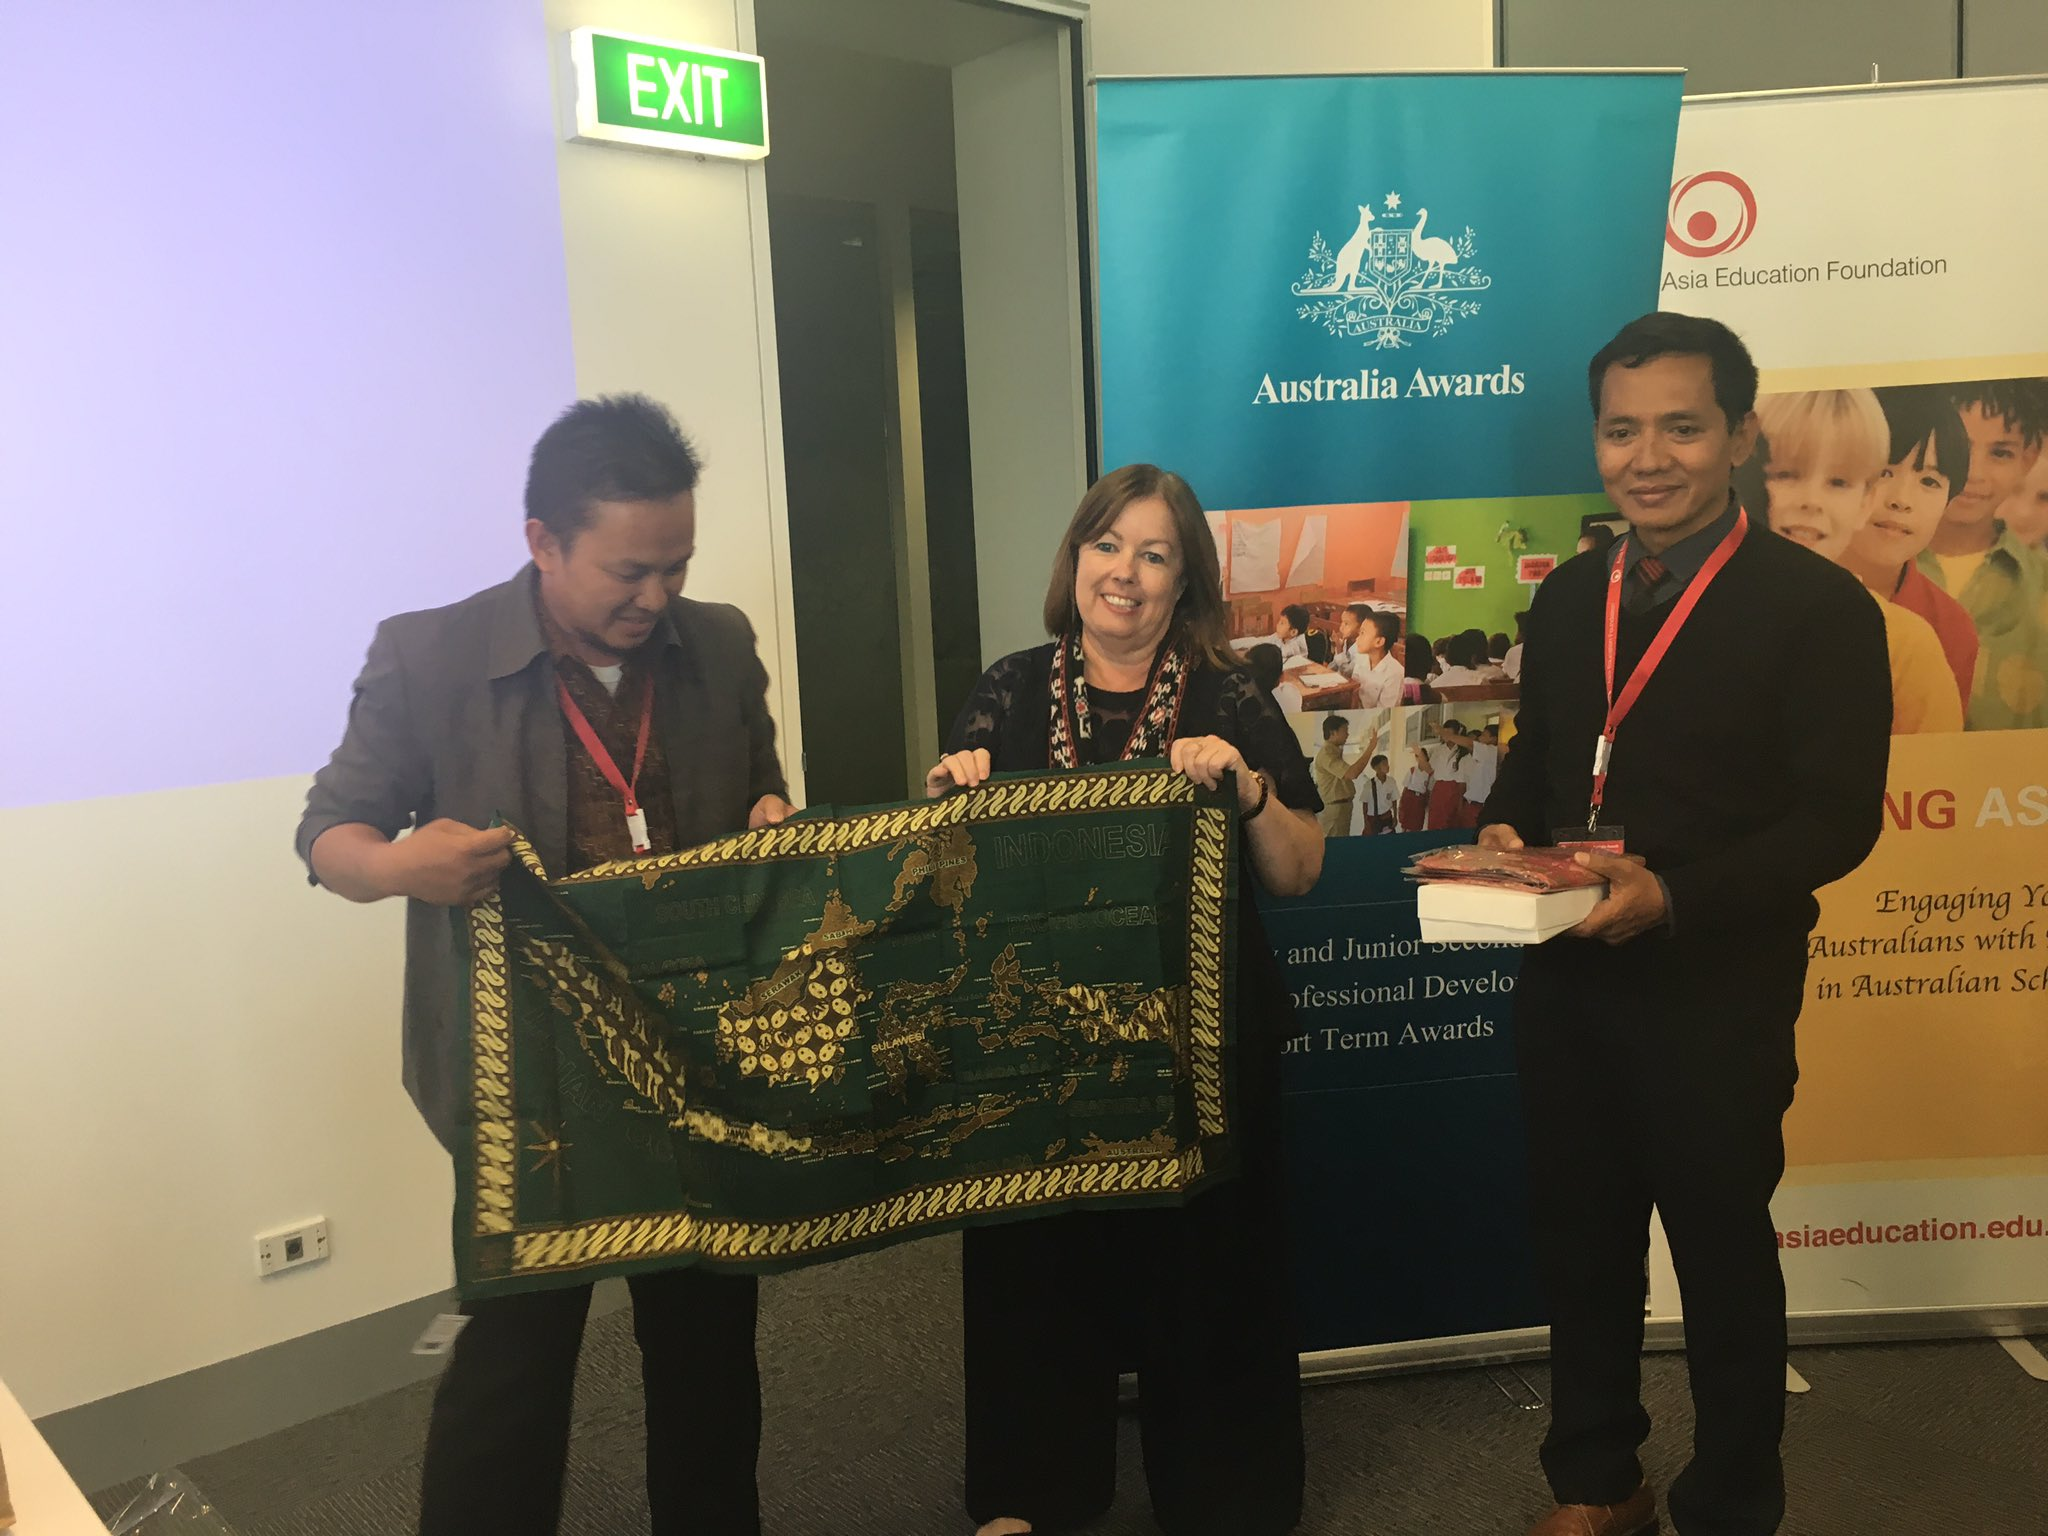 Final farewell for cohort 2 #AustraliaAwards program #OzAlum thanks to all our partners that supported course delivery @acereduau @EduMelb https://t.co/e7H9Z1xl8C